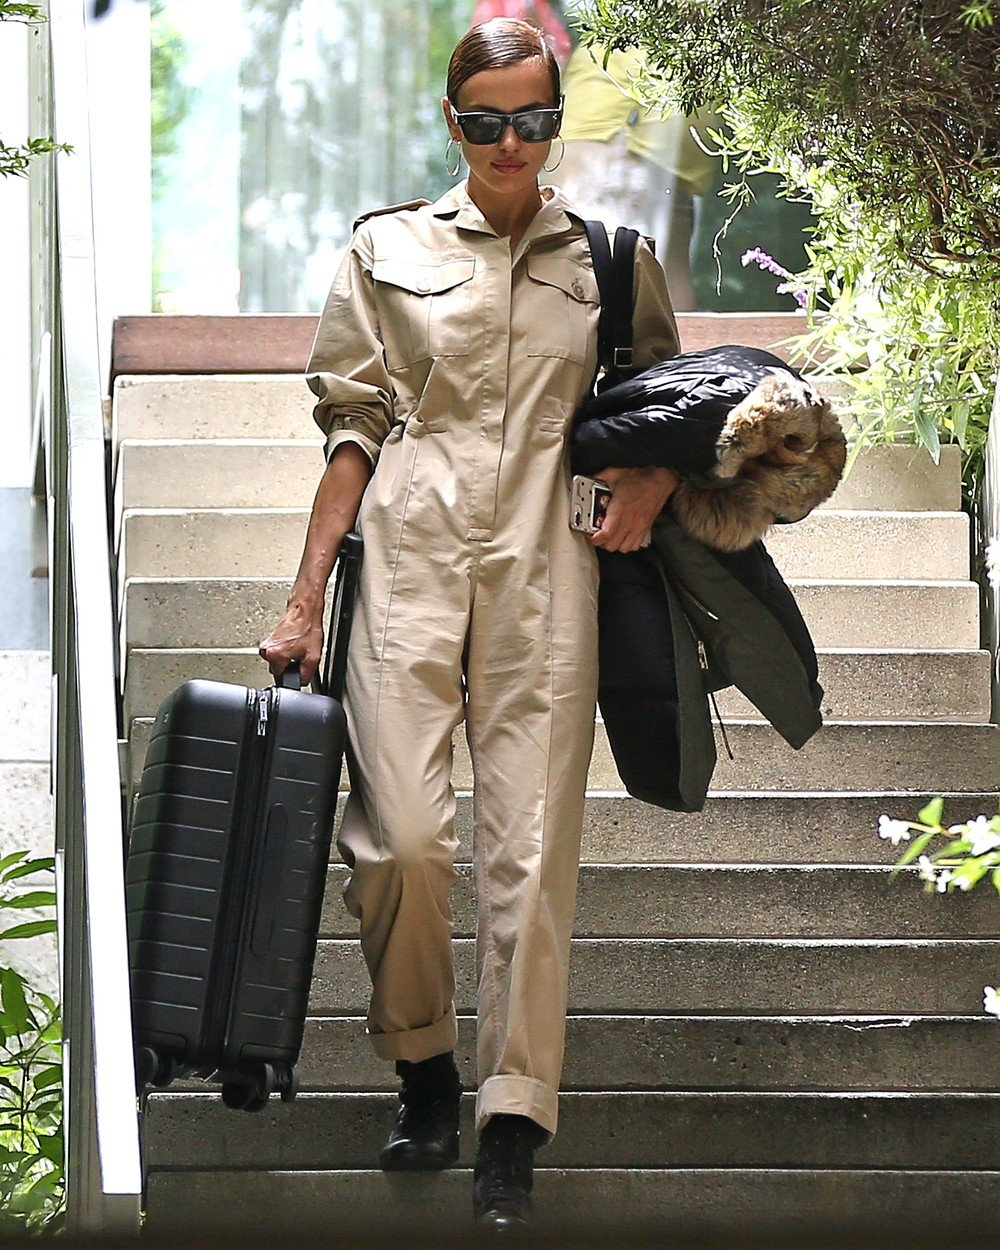 Irina Shayk seen leaving her home she shares with Boyfriend Bradley Cooper before catching a flight out of LAX, Irina and Bradley Coopers relationship is reportedly on the rocks. 06 Jun 2019, Image: 443979446, License: Rights-managed, Restrictions: World Rights, Model Release: no, Credit line: Profimedia, Mega Agency